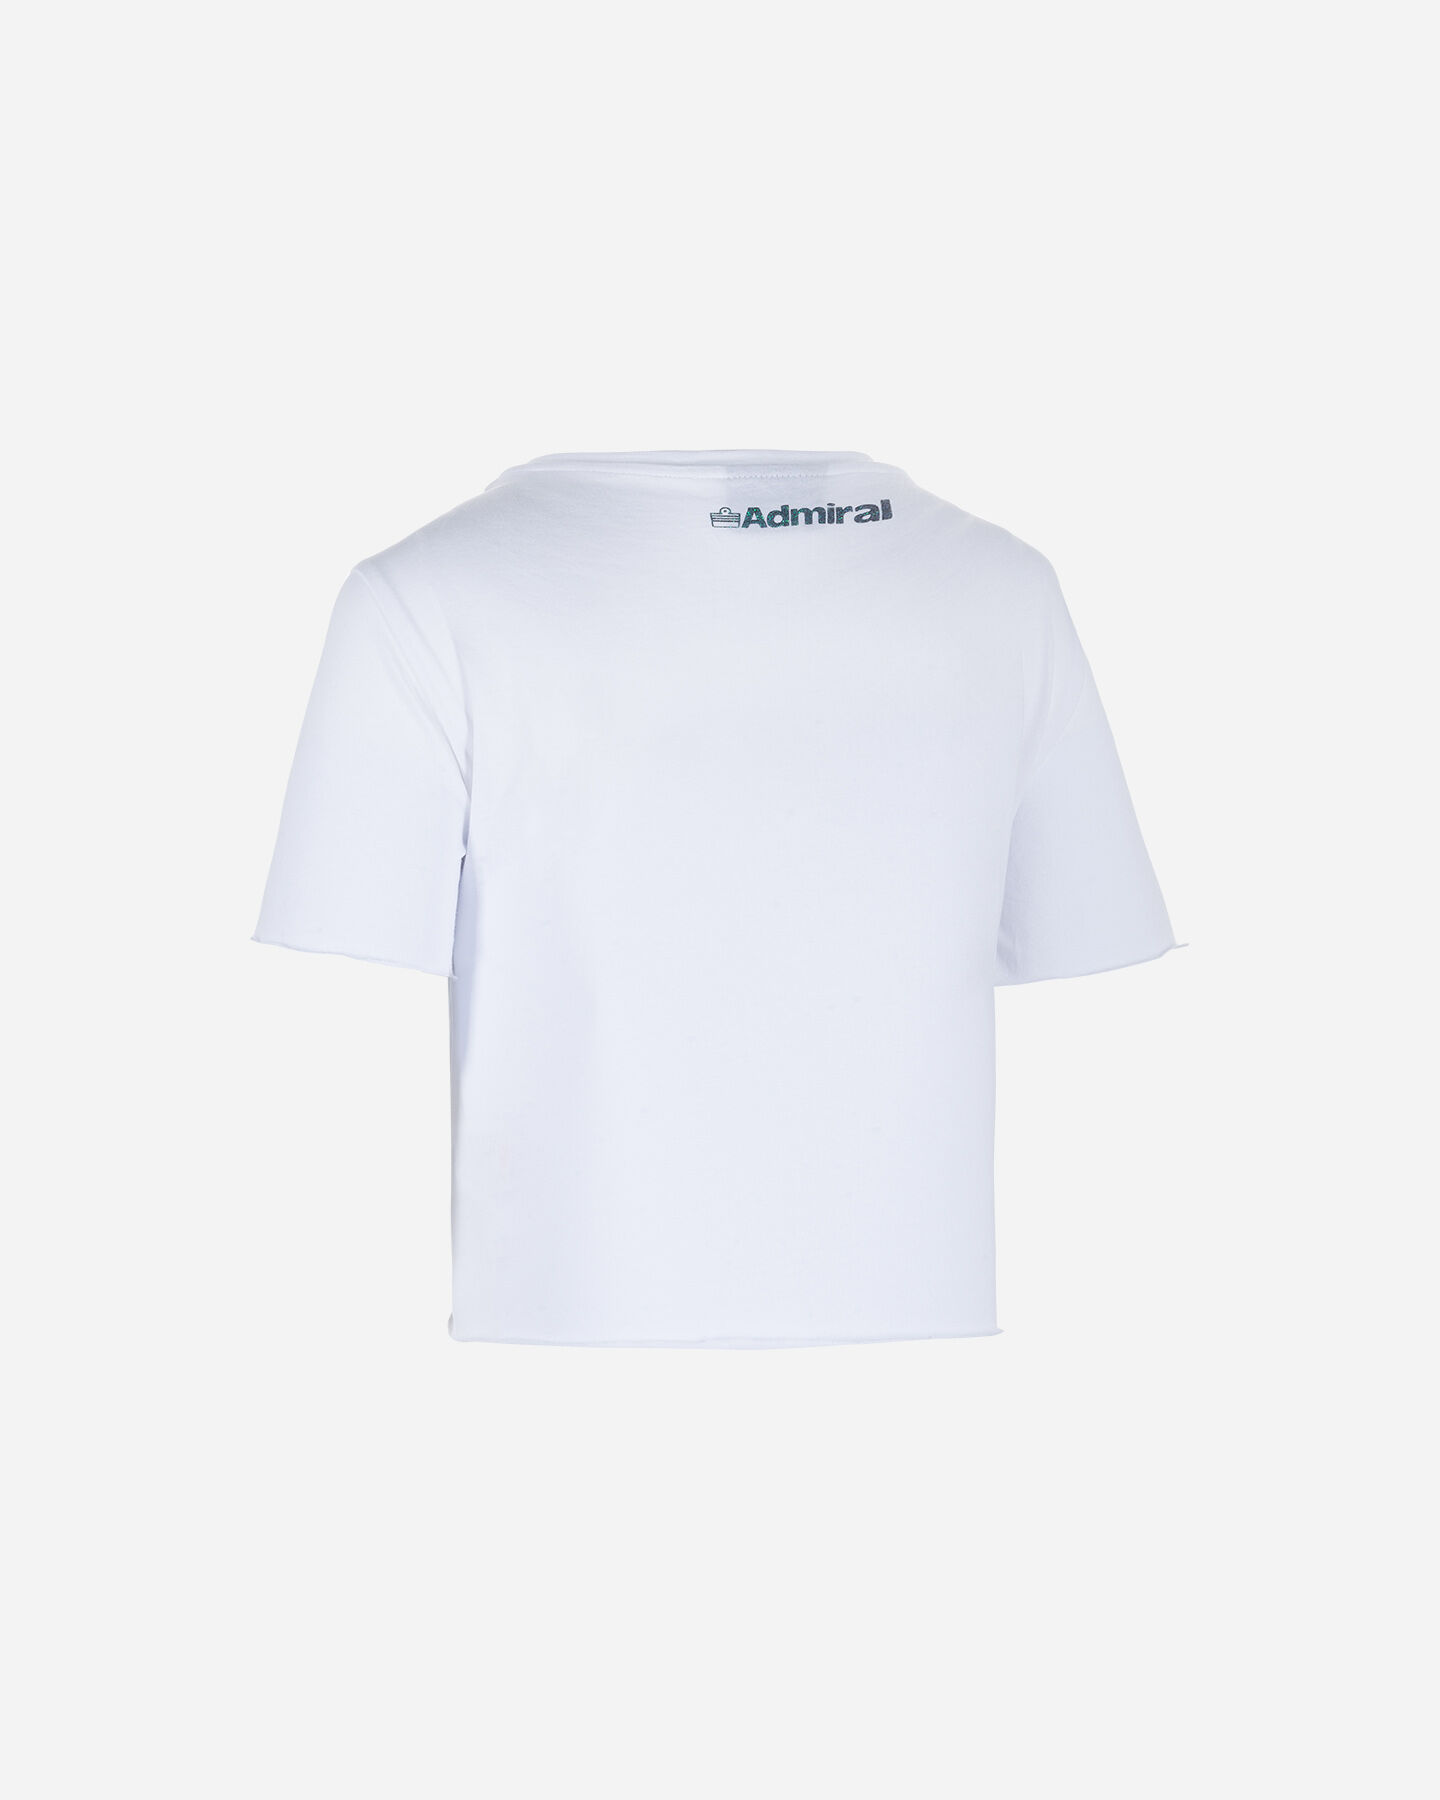 T-Shirt ADMIRAL CROPPED JR S4075968 scatto 1